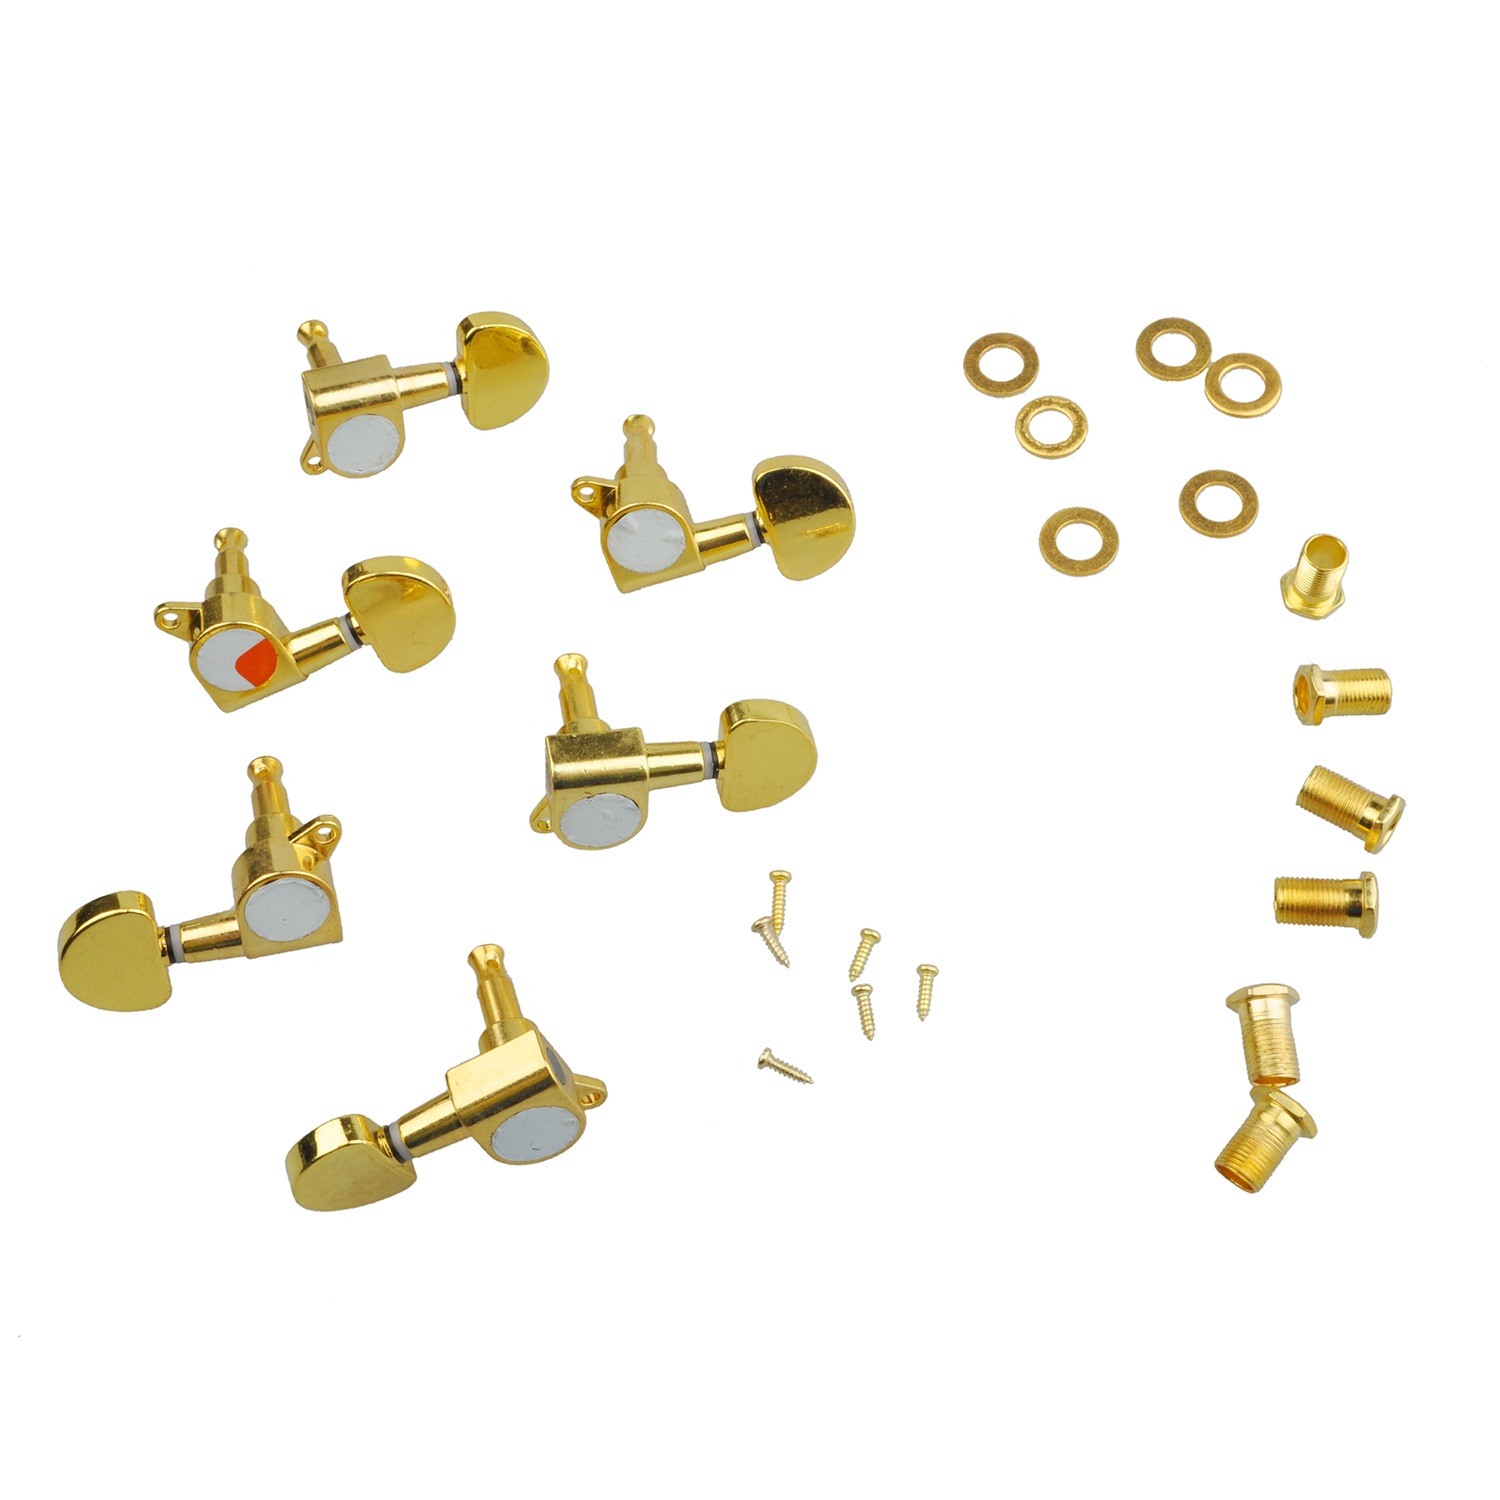 Wholesale 5X 3 Pairs Sealed Guitar String Tuning Pegs Tuners Machine Heads 3L + 3R Gold / Steel and Zinc Alloy Gold Guitar Heads high quality 18pcs set cosmetic makeup brush foundation powder eyeliner professional brushes tool with roll up leather case